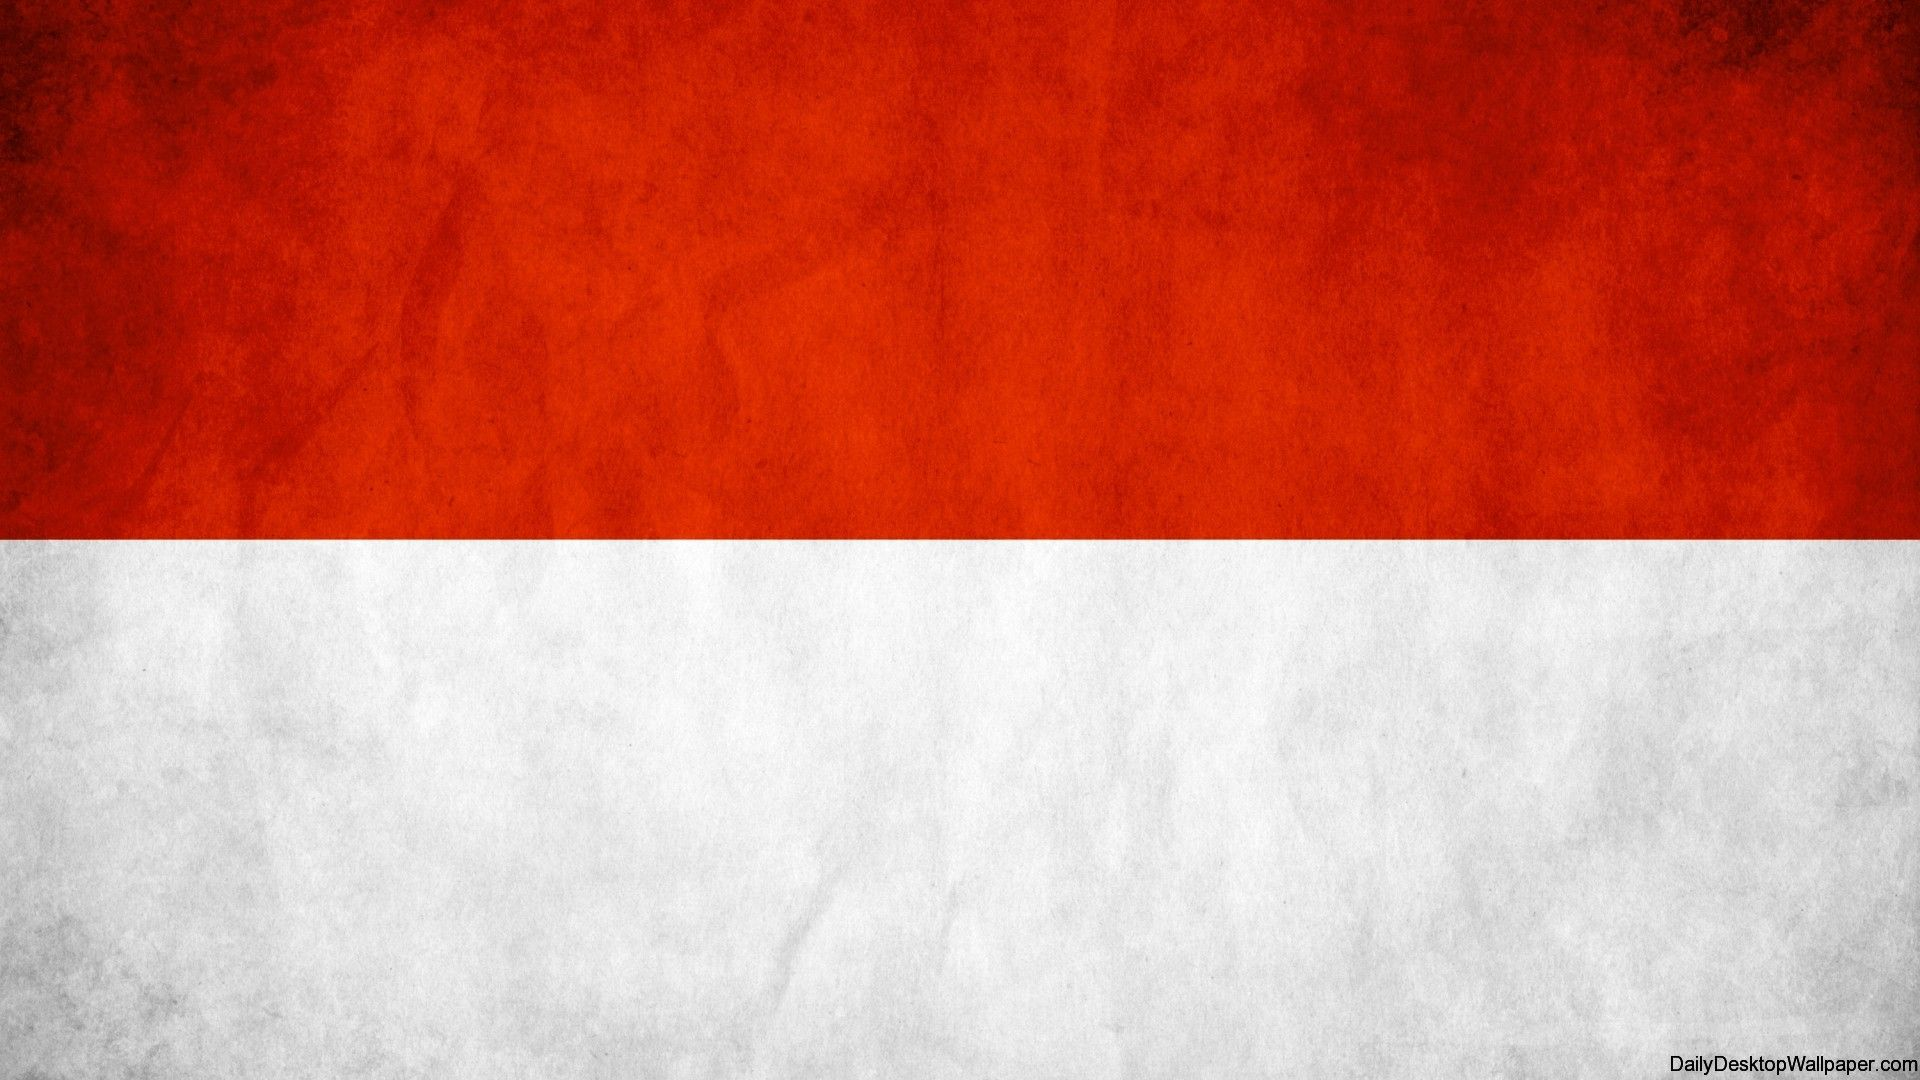 Indonesia Flag Wallpapers - Top Free Indonesia Flag Backgrounds